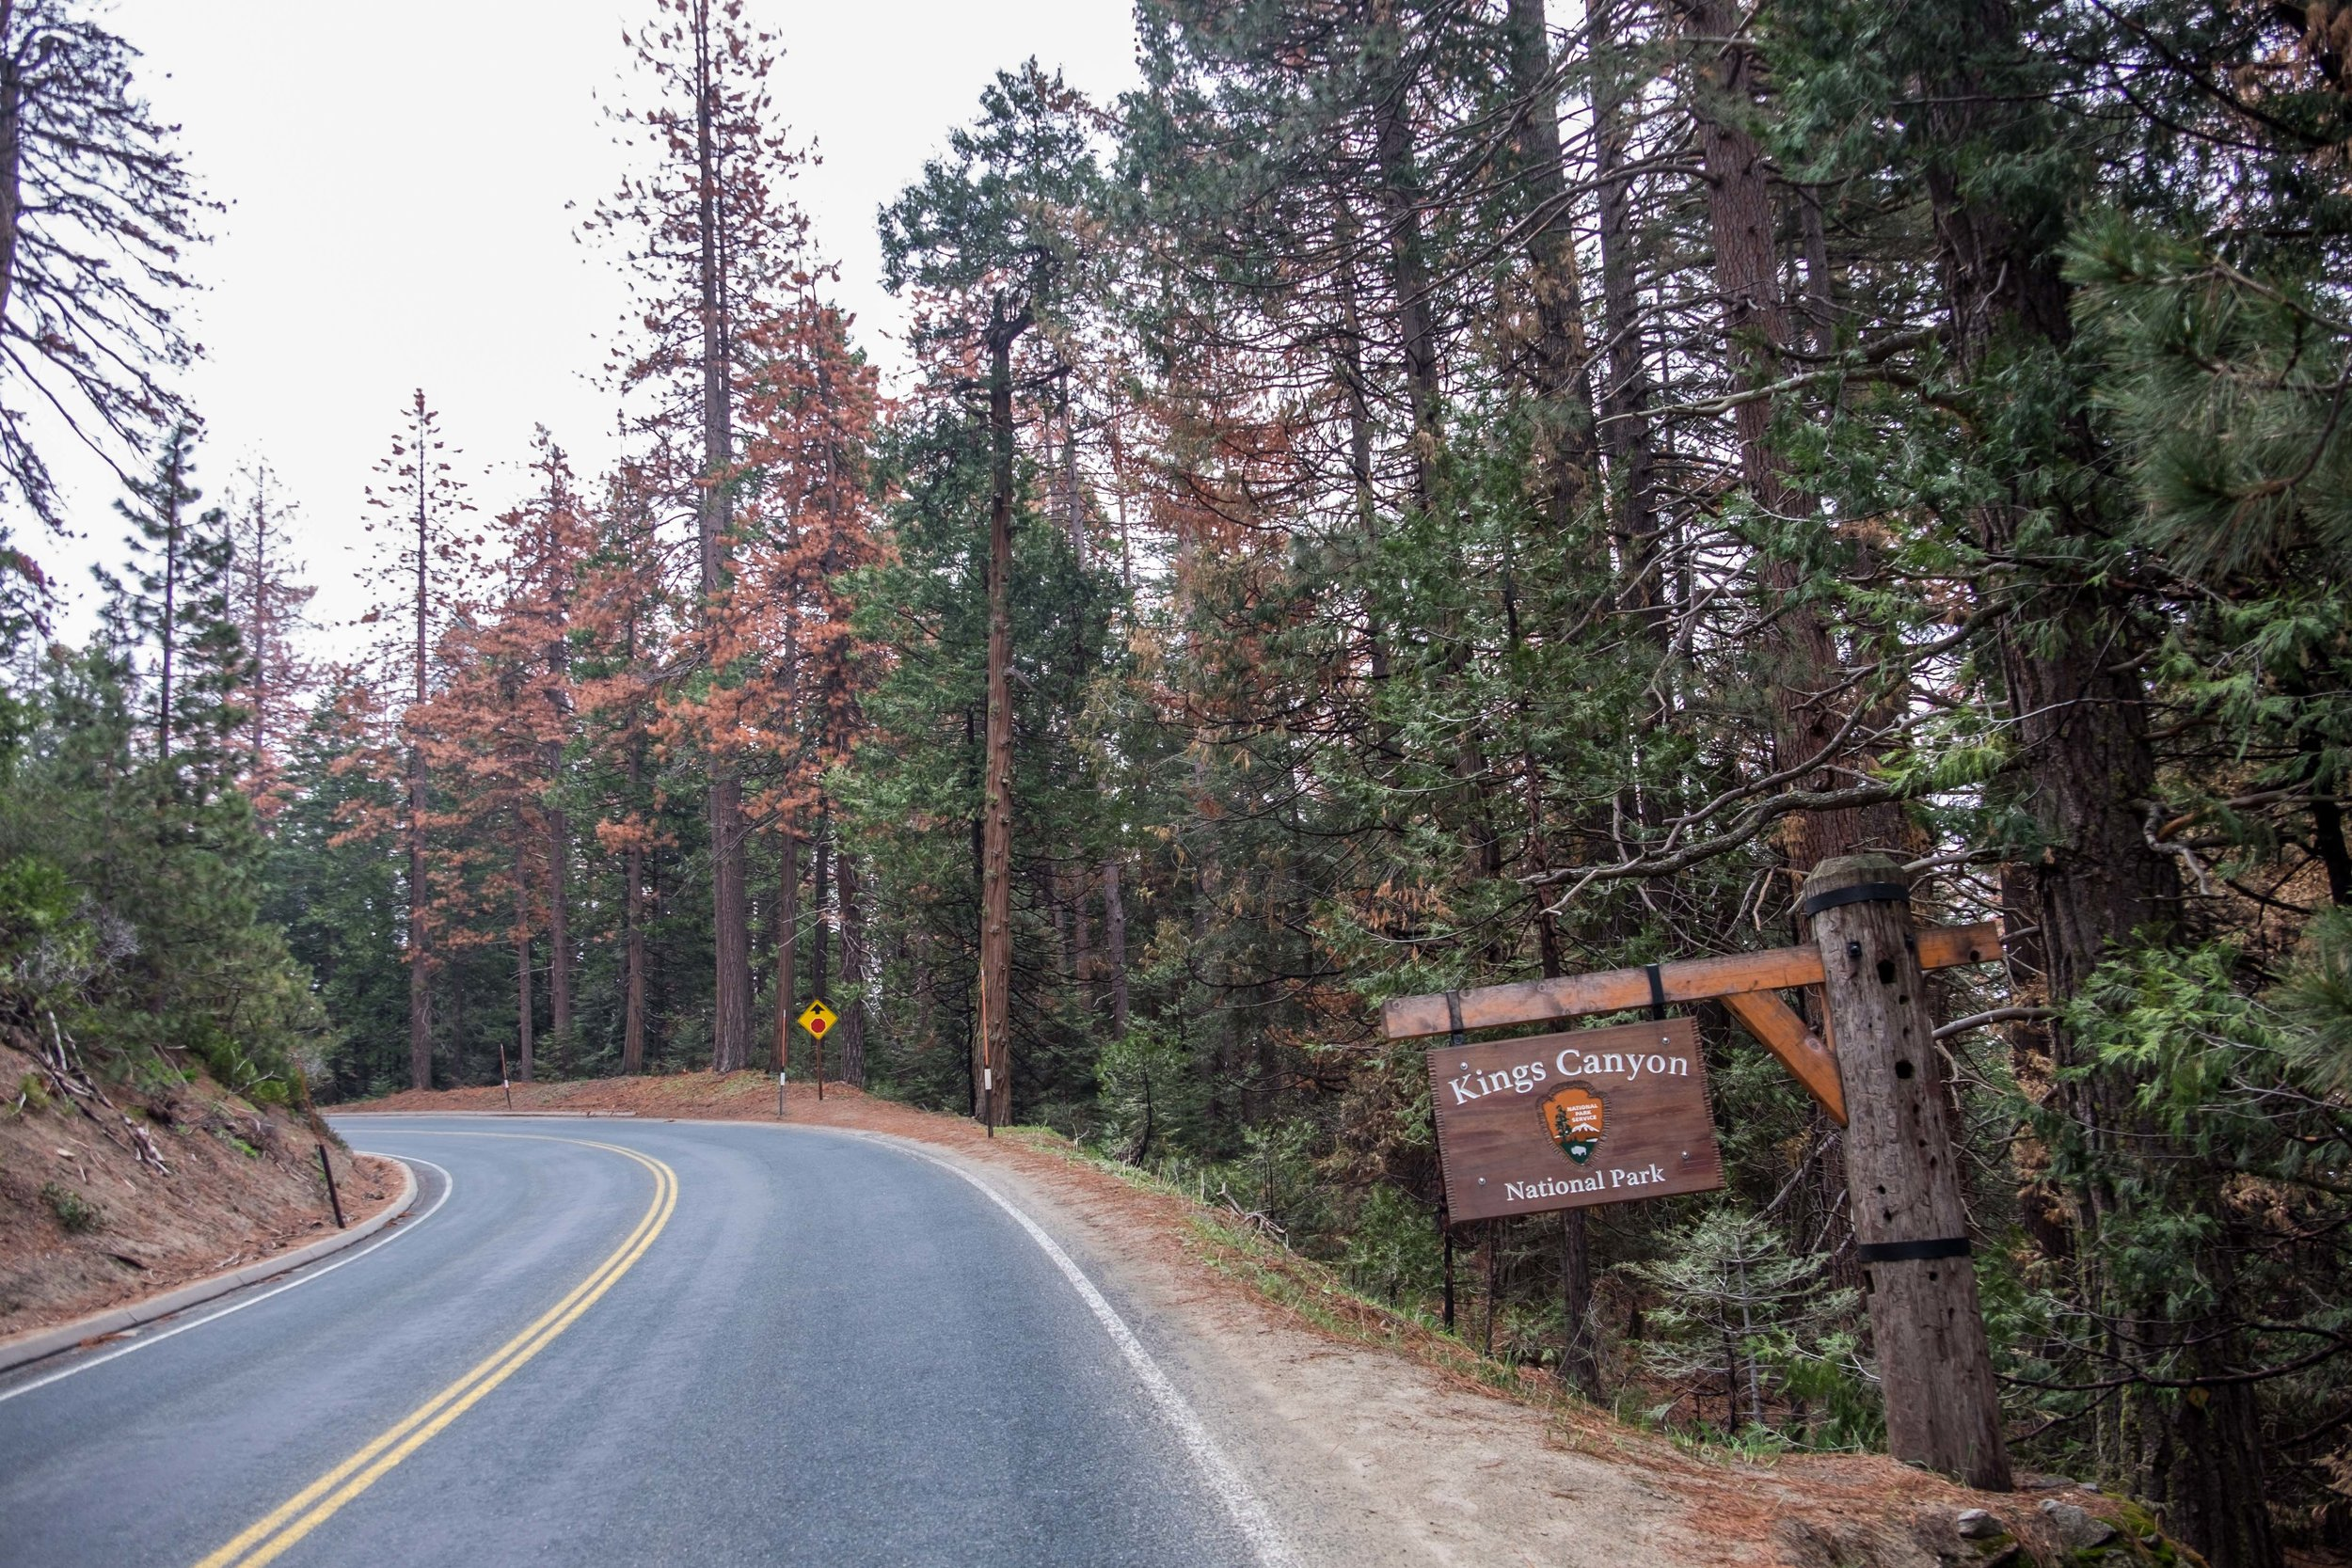 20160509-SP- Kings Canyon National Park-_DSF3706.jpg